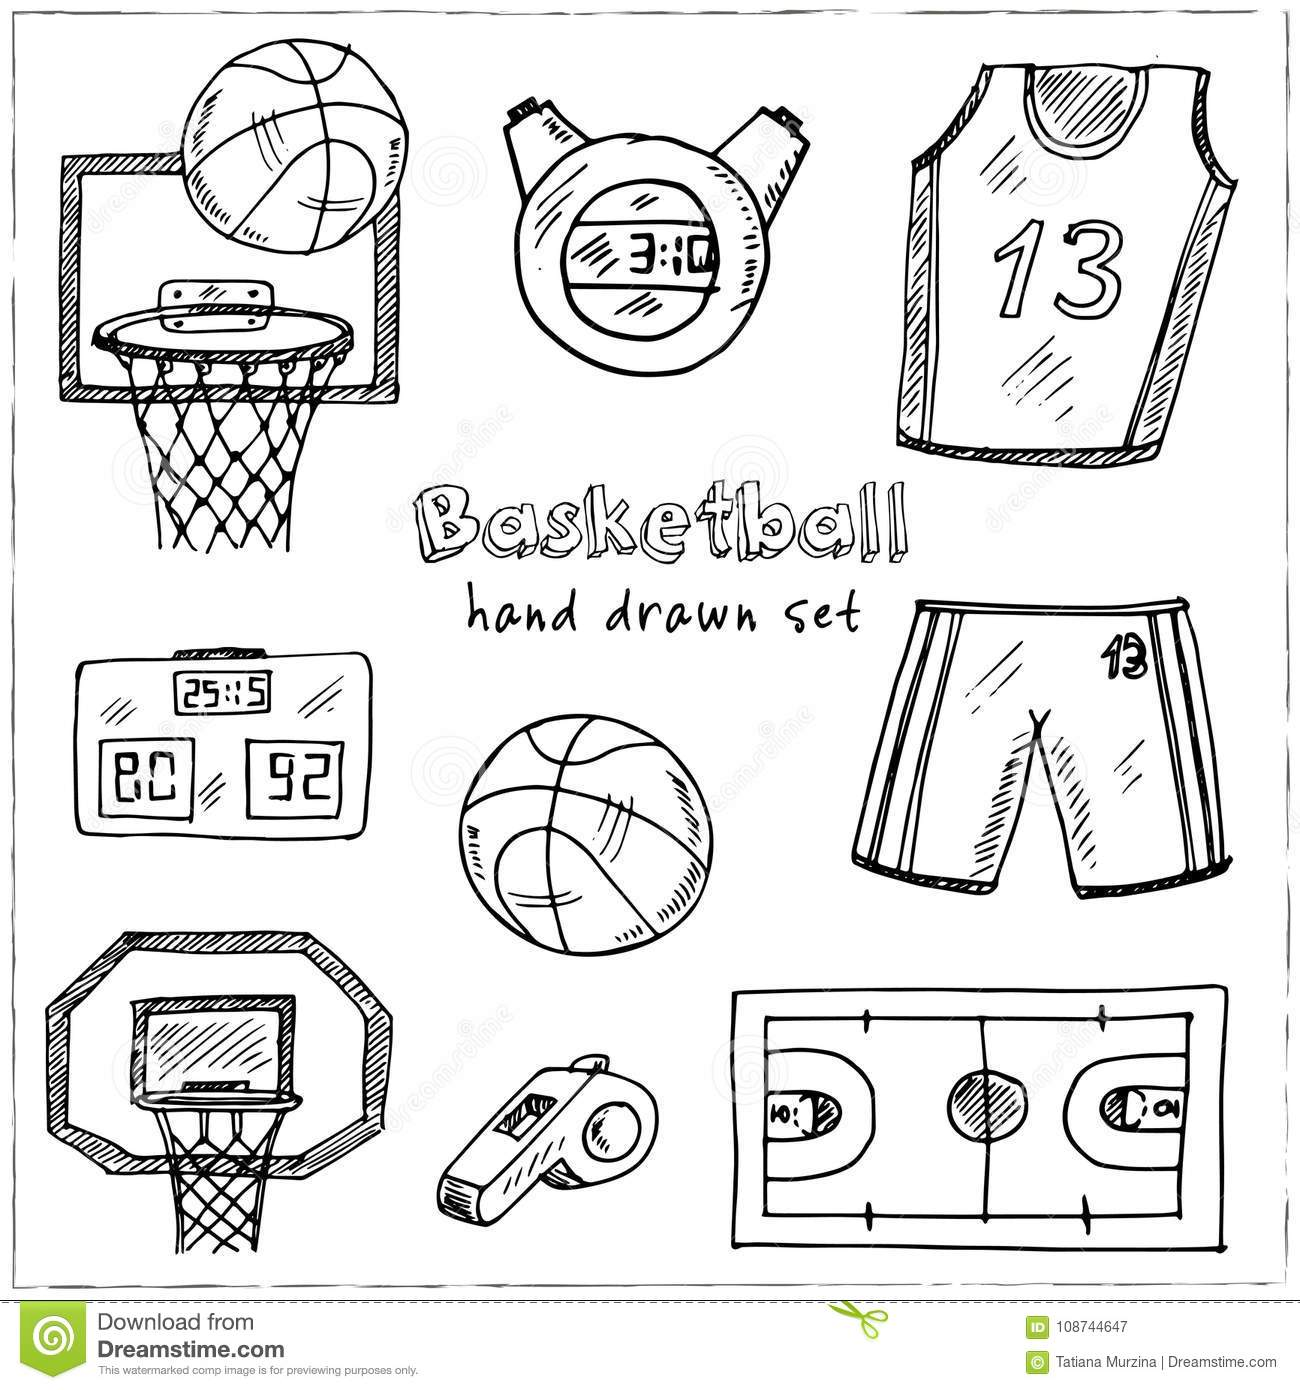 Basketball. Hand drawn doodle set. Sketches. Vector illustration for design and packages product.